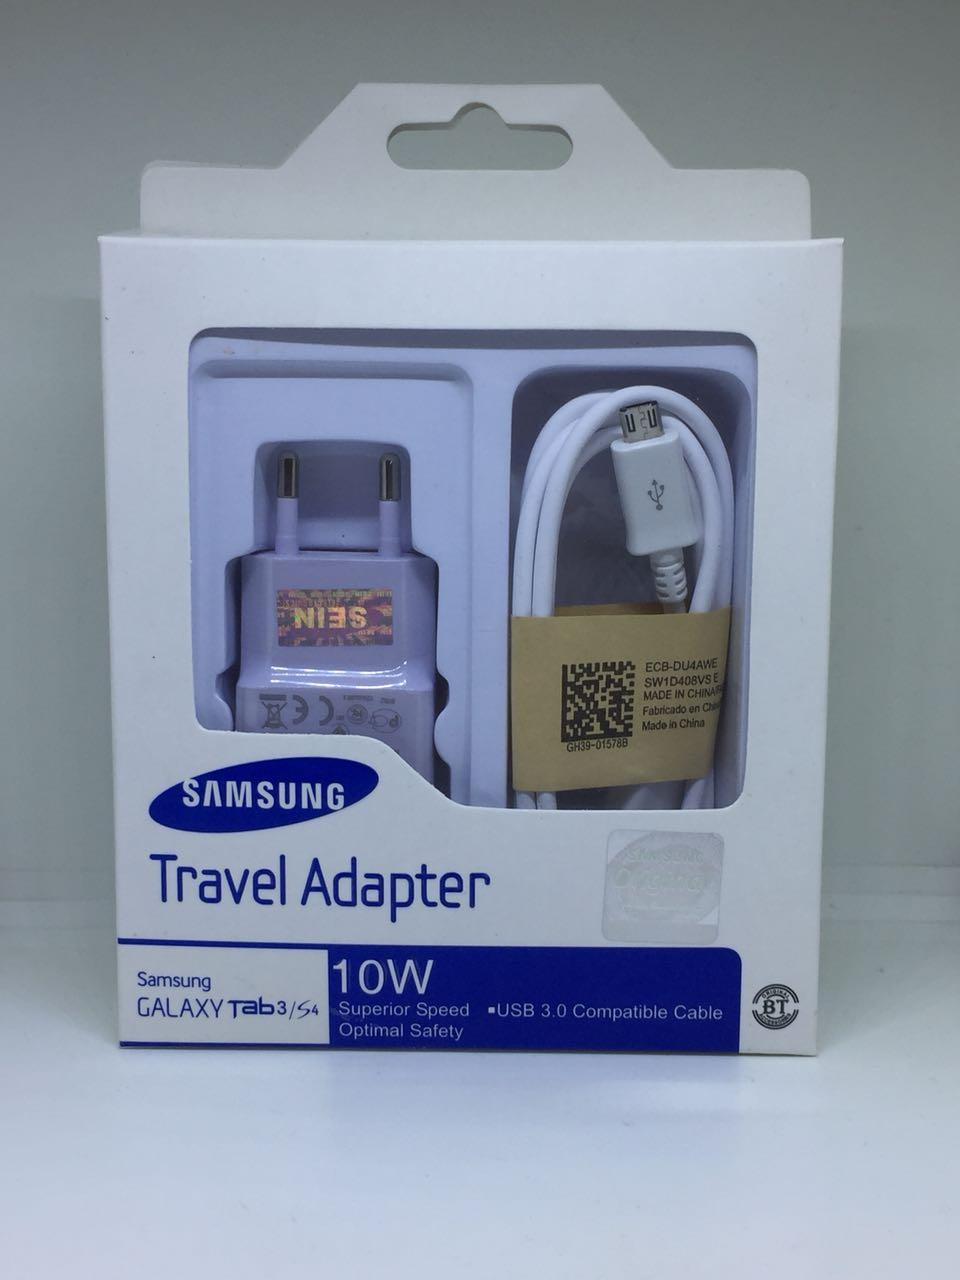 Charger For Samsung Galaxy S4 Tab 3 Note 2 10Watt Charger Charging Kualitas Original ORI - Bisa Untuk Xiaomi Redmi Note 2 3 4 Max Redmi 1 1s 2 2A 3 3S Pro 4A 4 Prime 4X 5 Mi 1 1S Mi 2 2S Mi 3 Mi 4 4i 4c 4s Lenovo A2020 A1000 A7000 A6600 A6000 A5000 K800